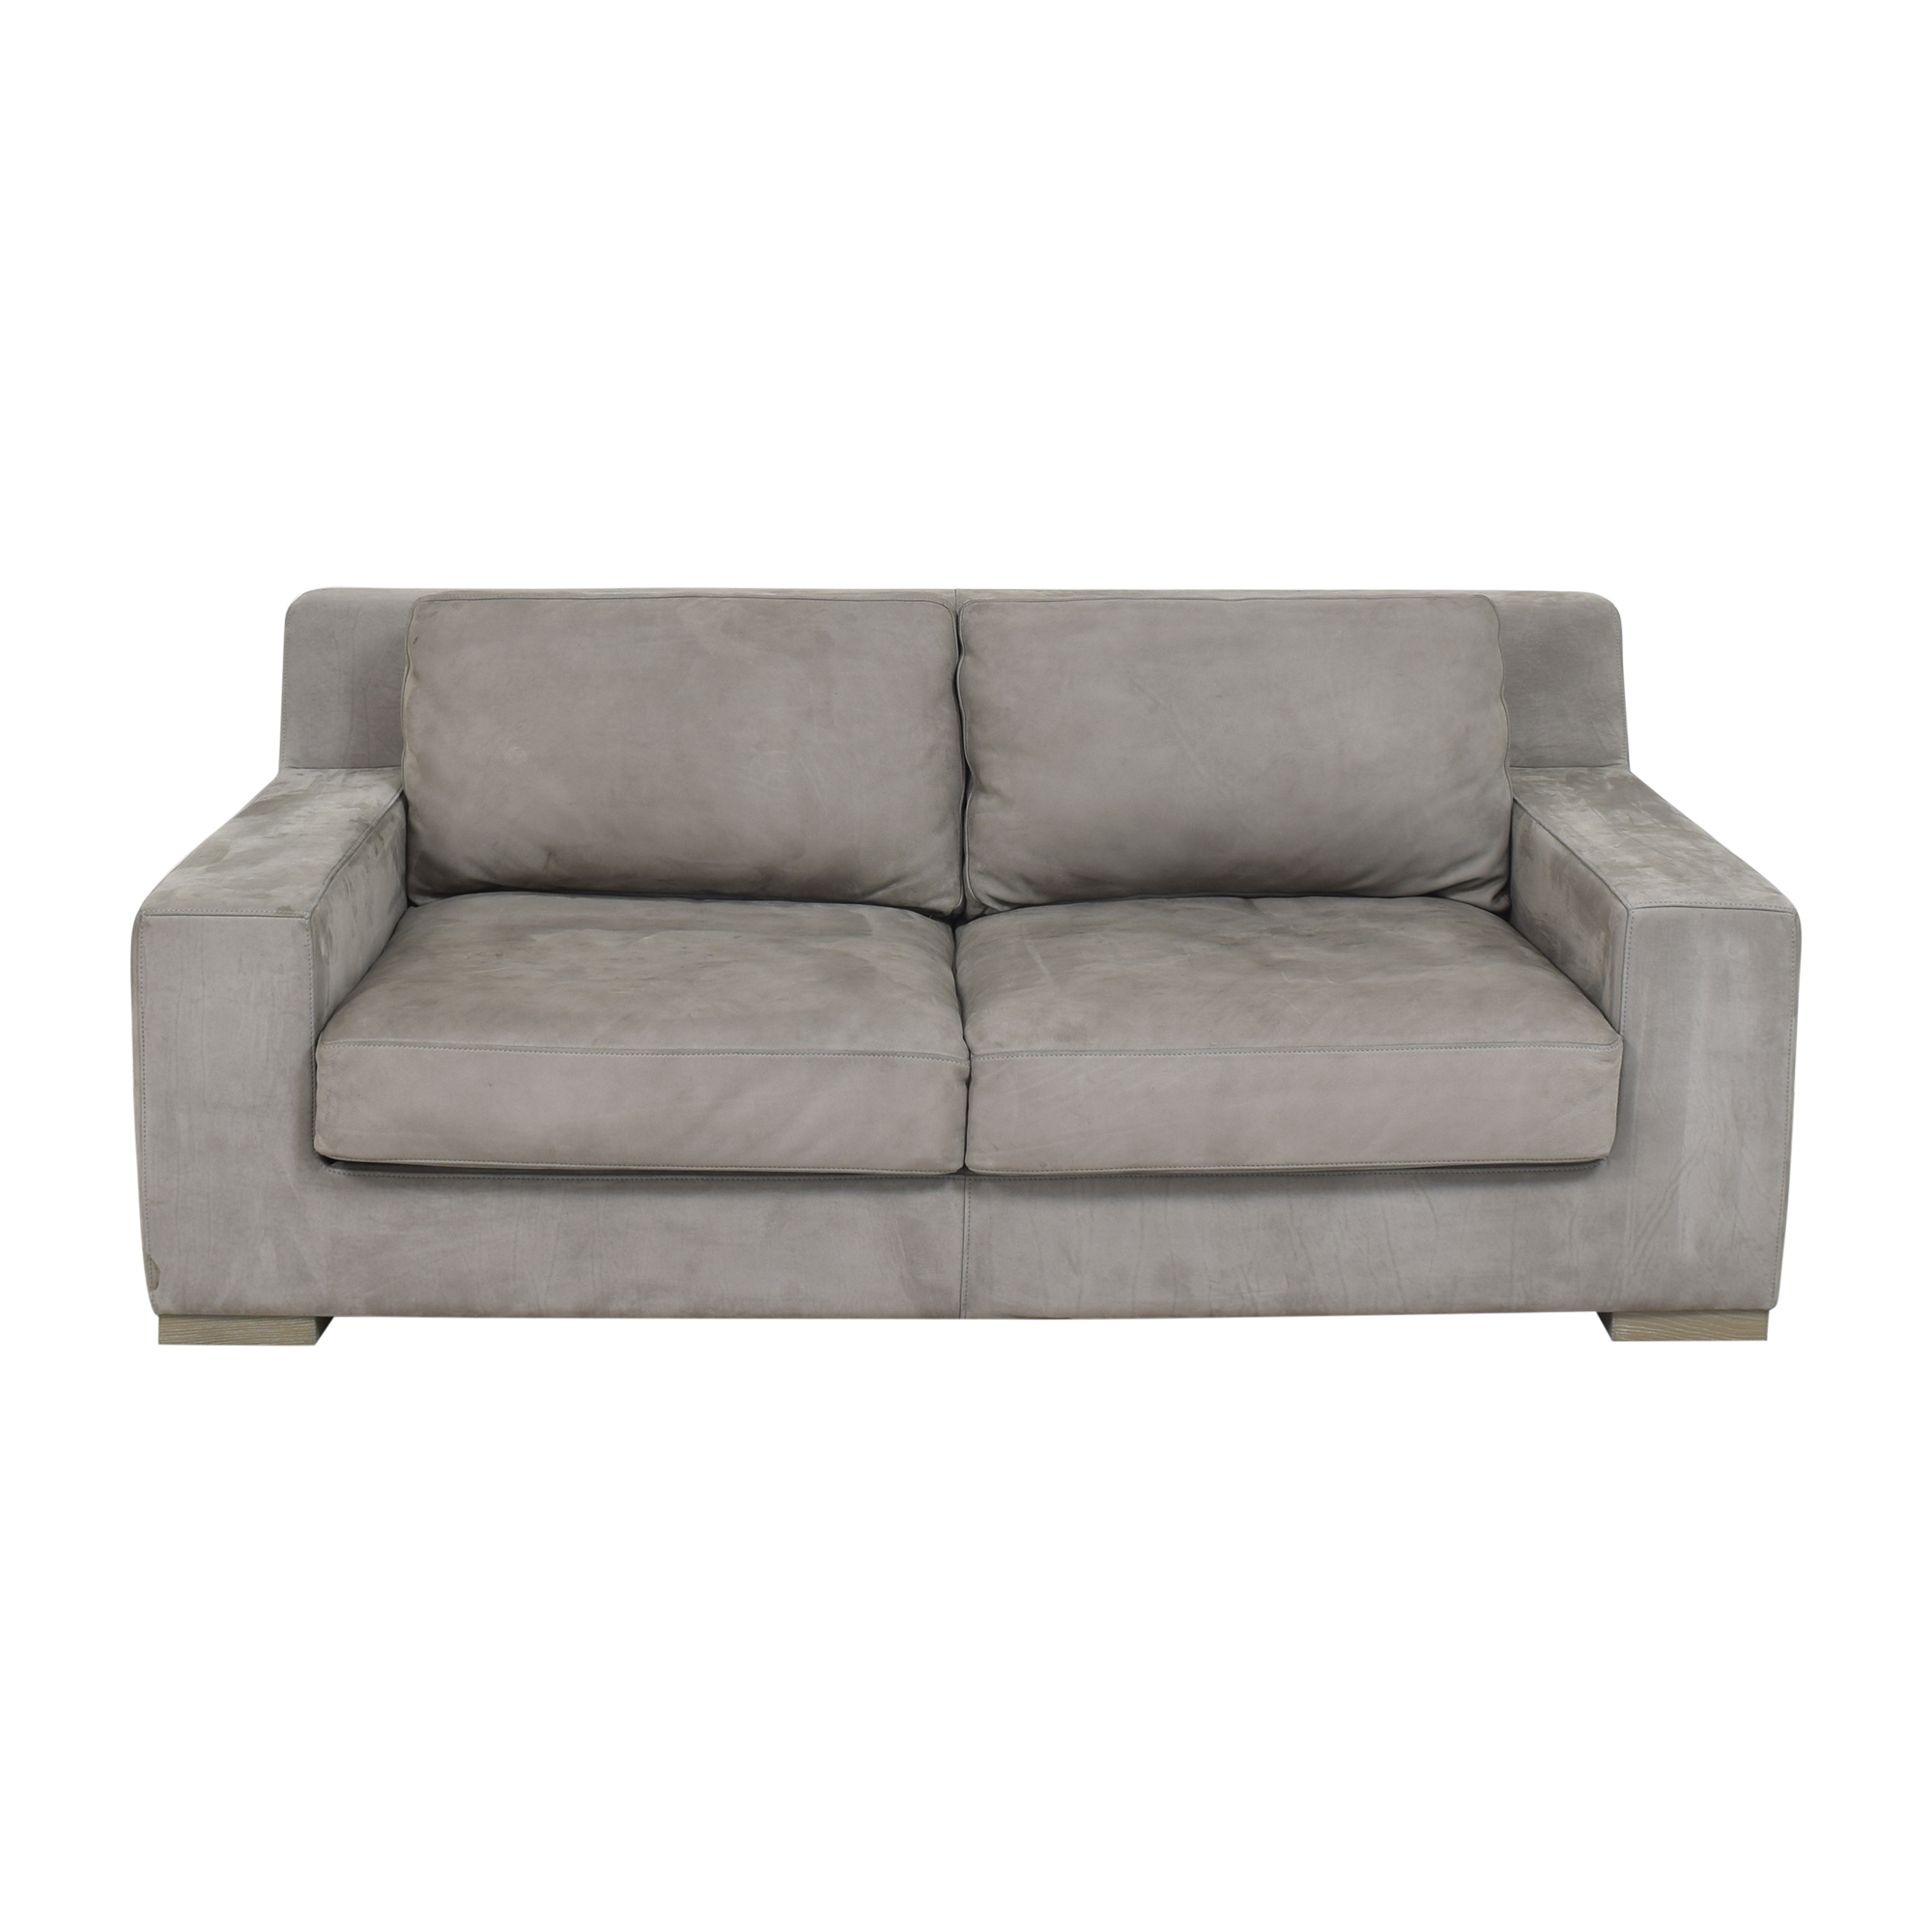 Restoration Hardware Modena Track Arm Sofa sale